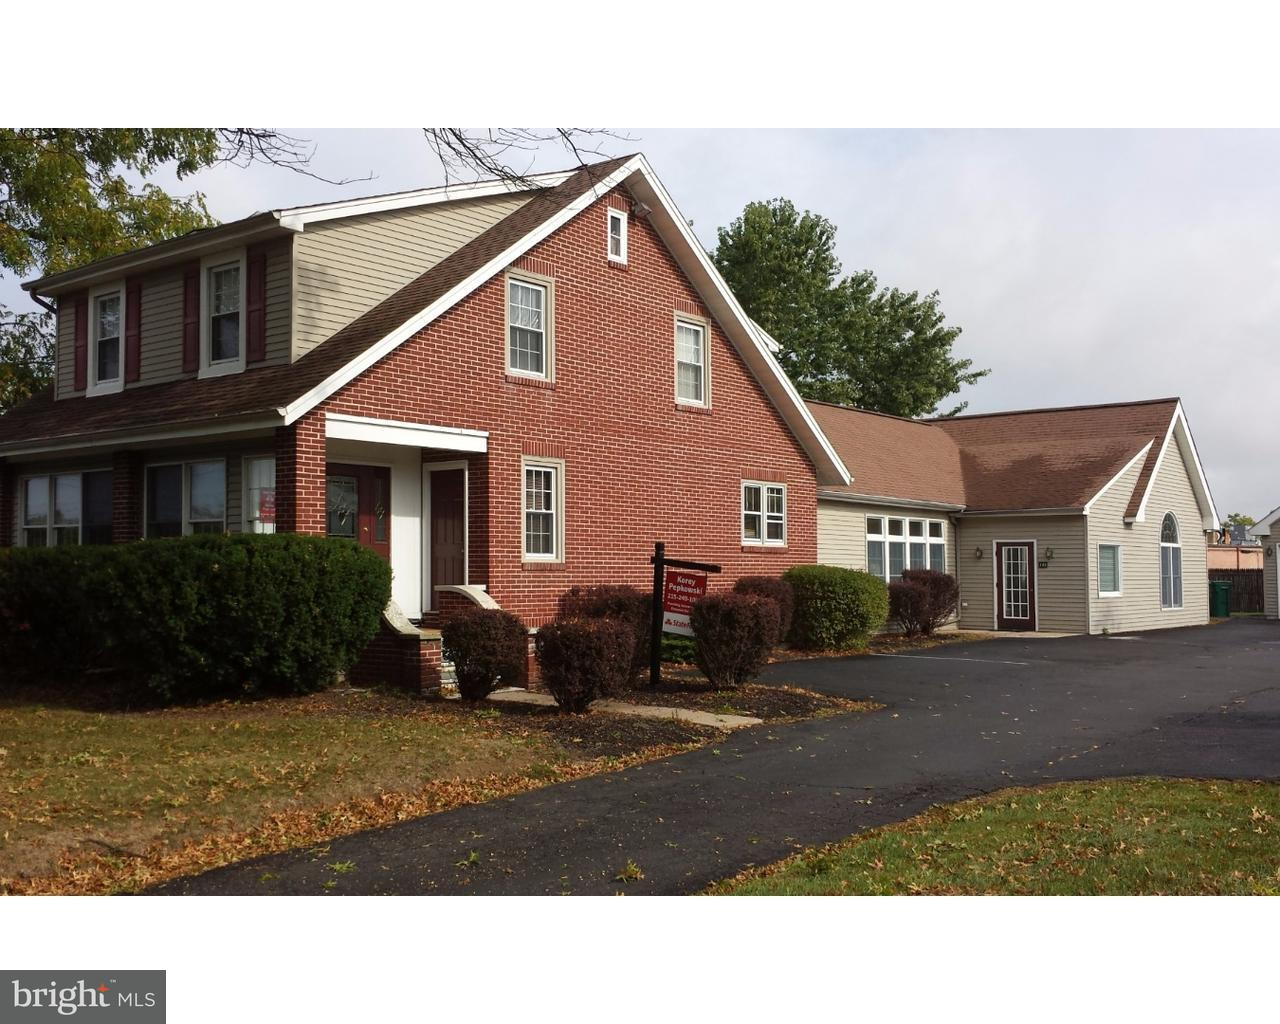 149 N MAIN ST, DUBLIN - Listed at $425,